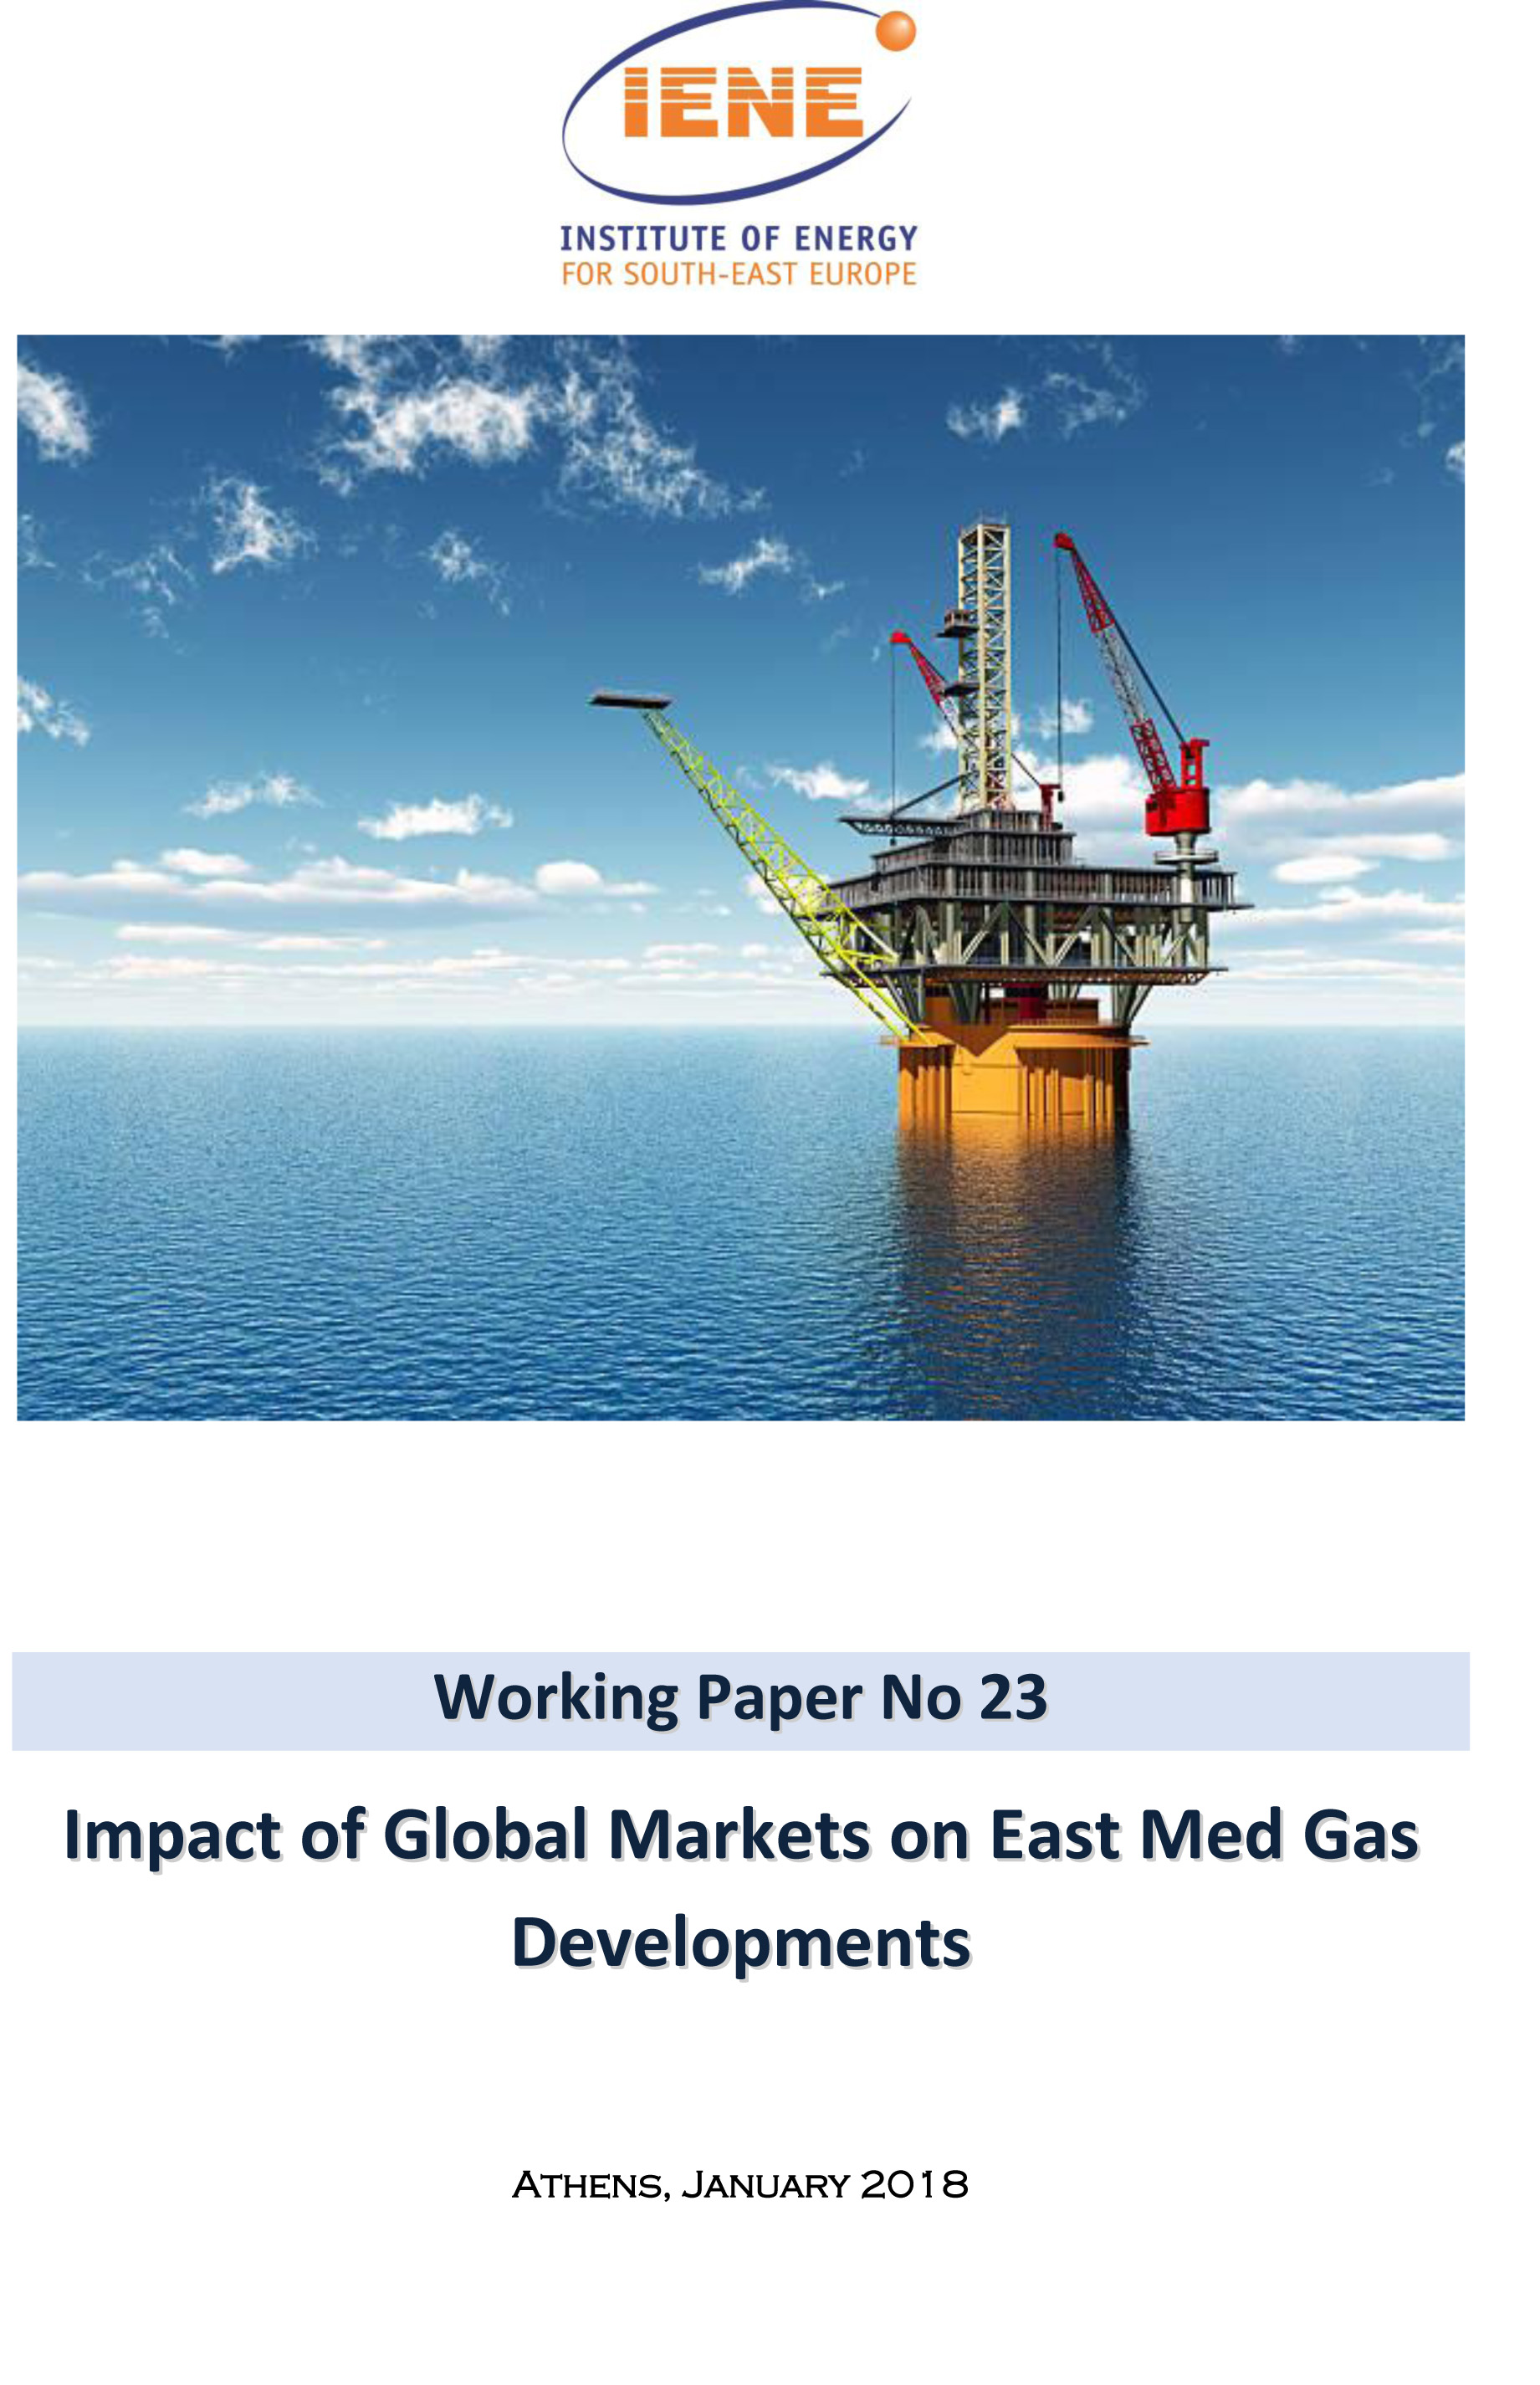 WP 23 -Impact of Global Markets on East Med Gas Developments